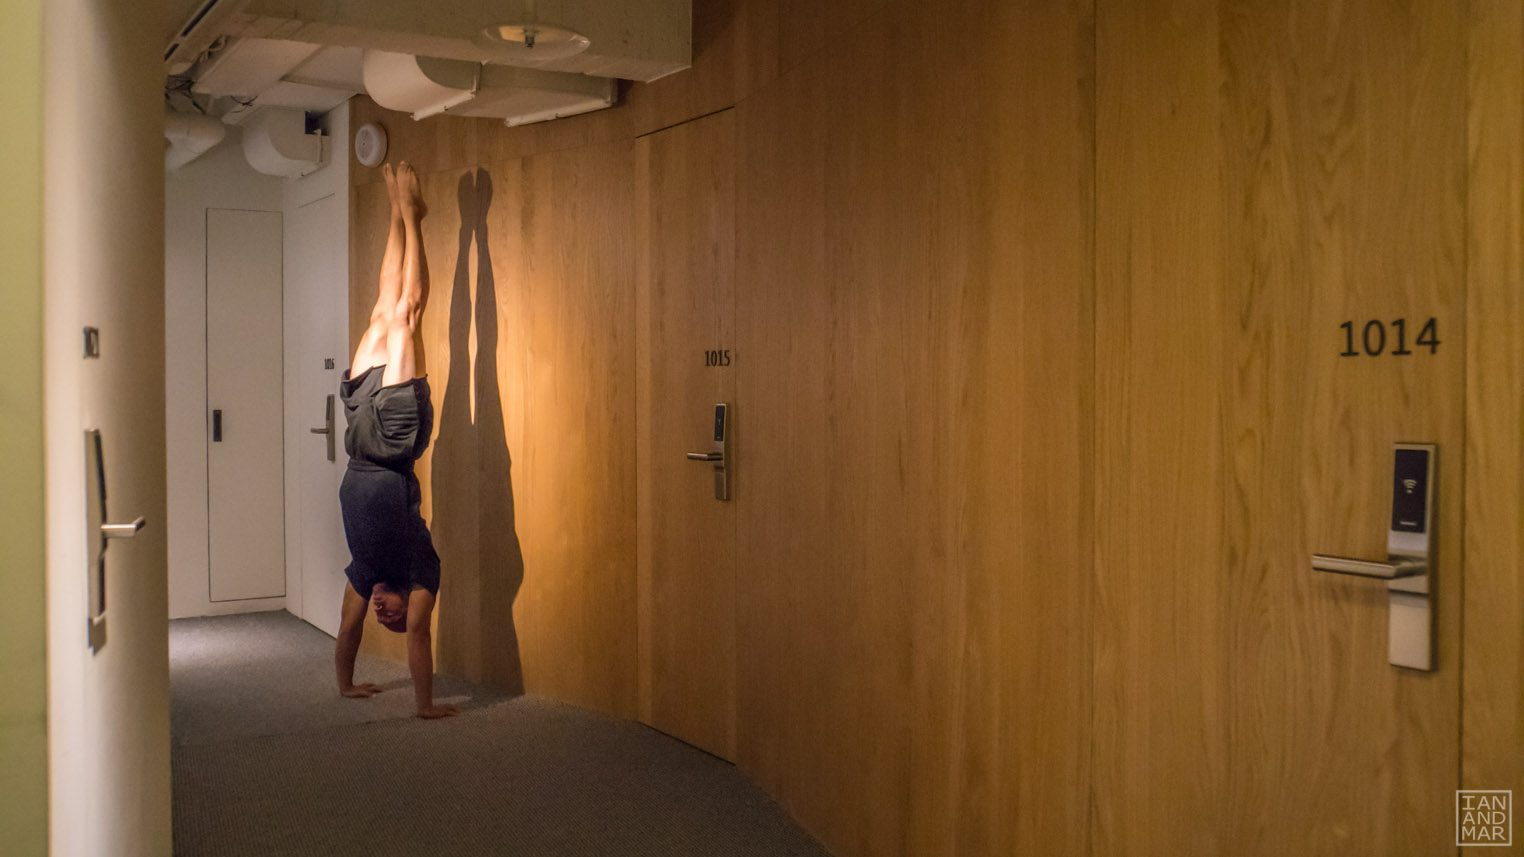 hallway with man on a handstand